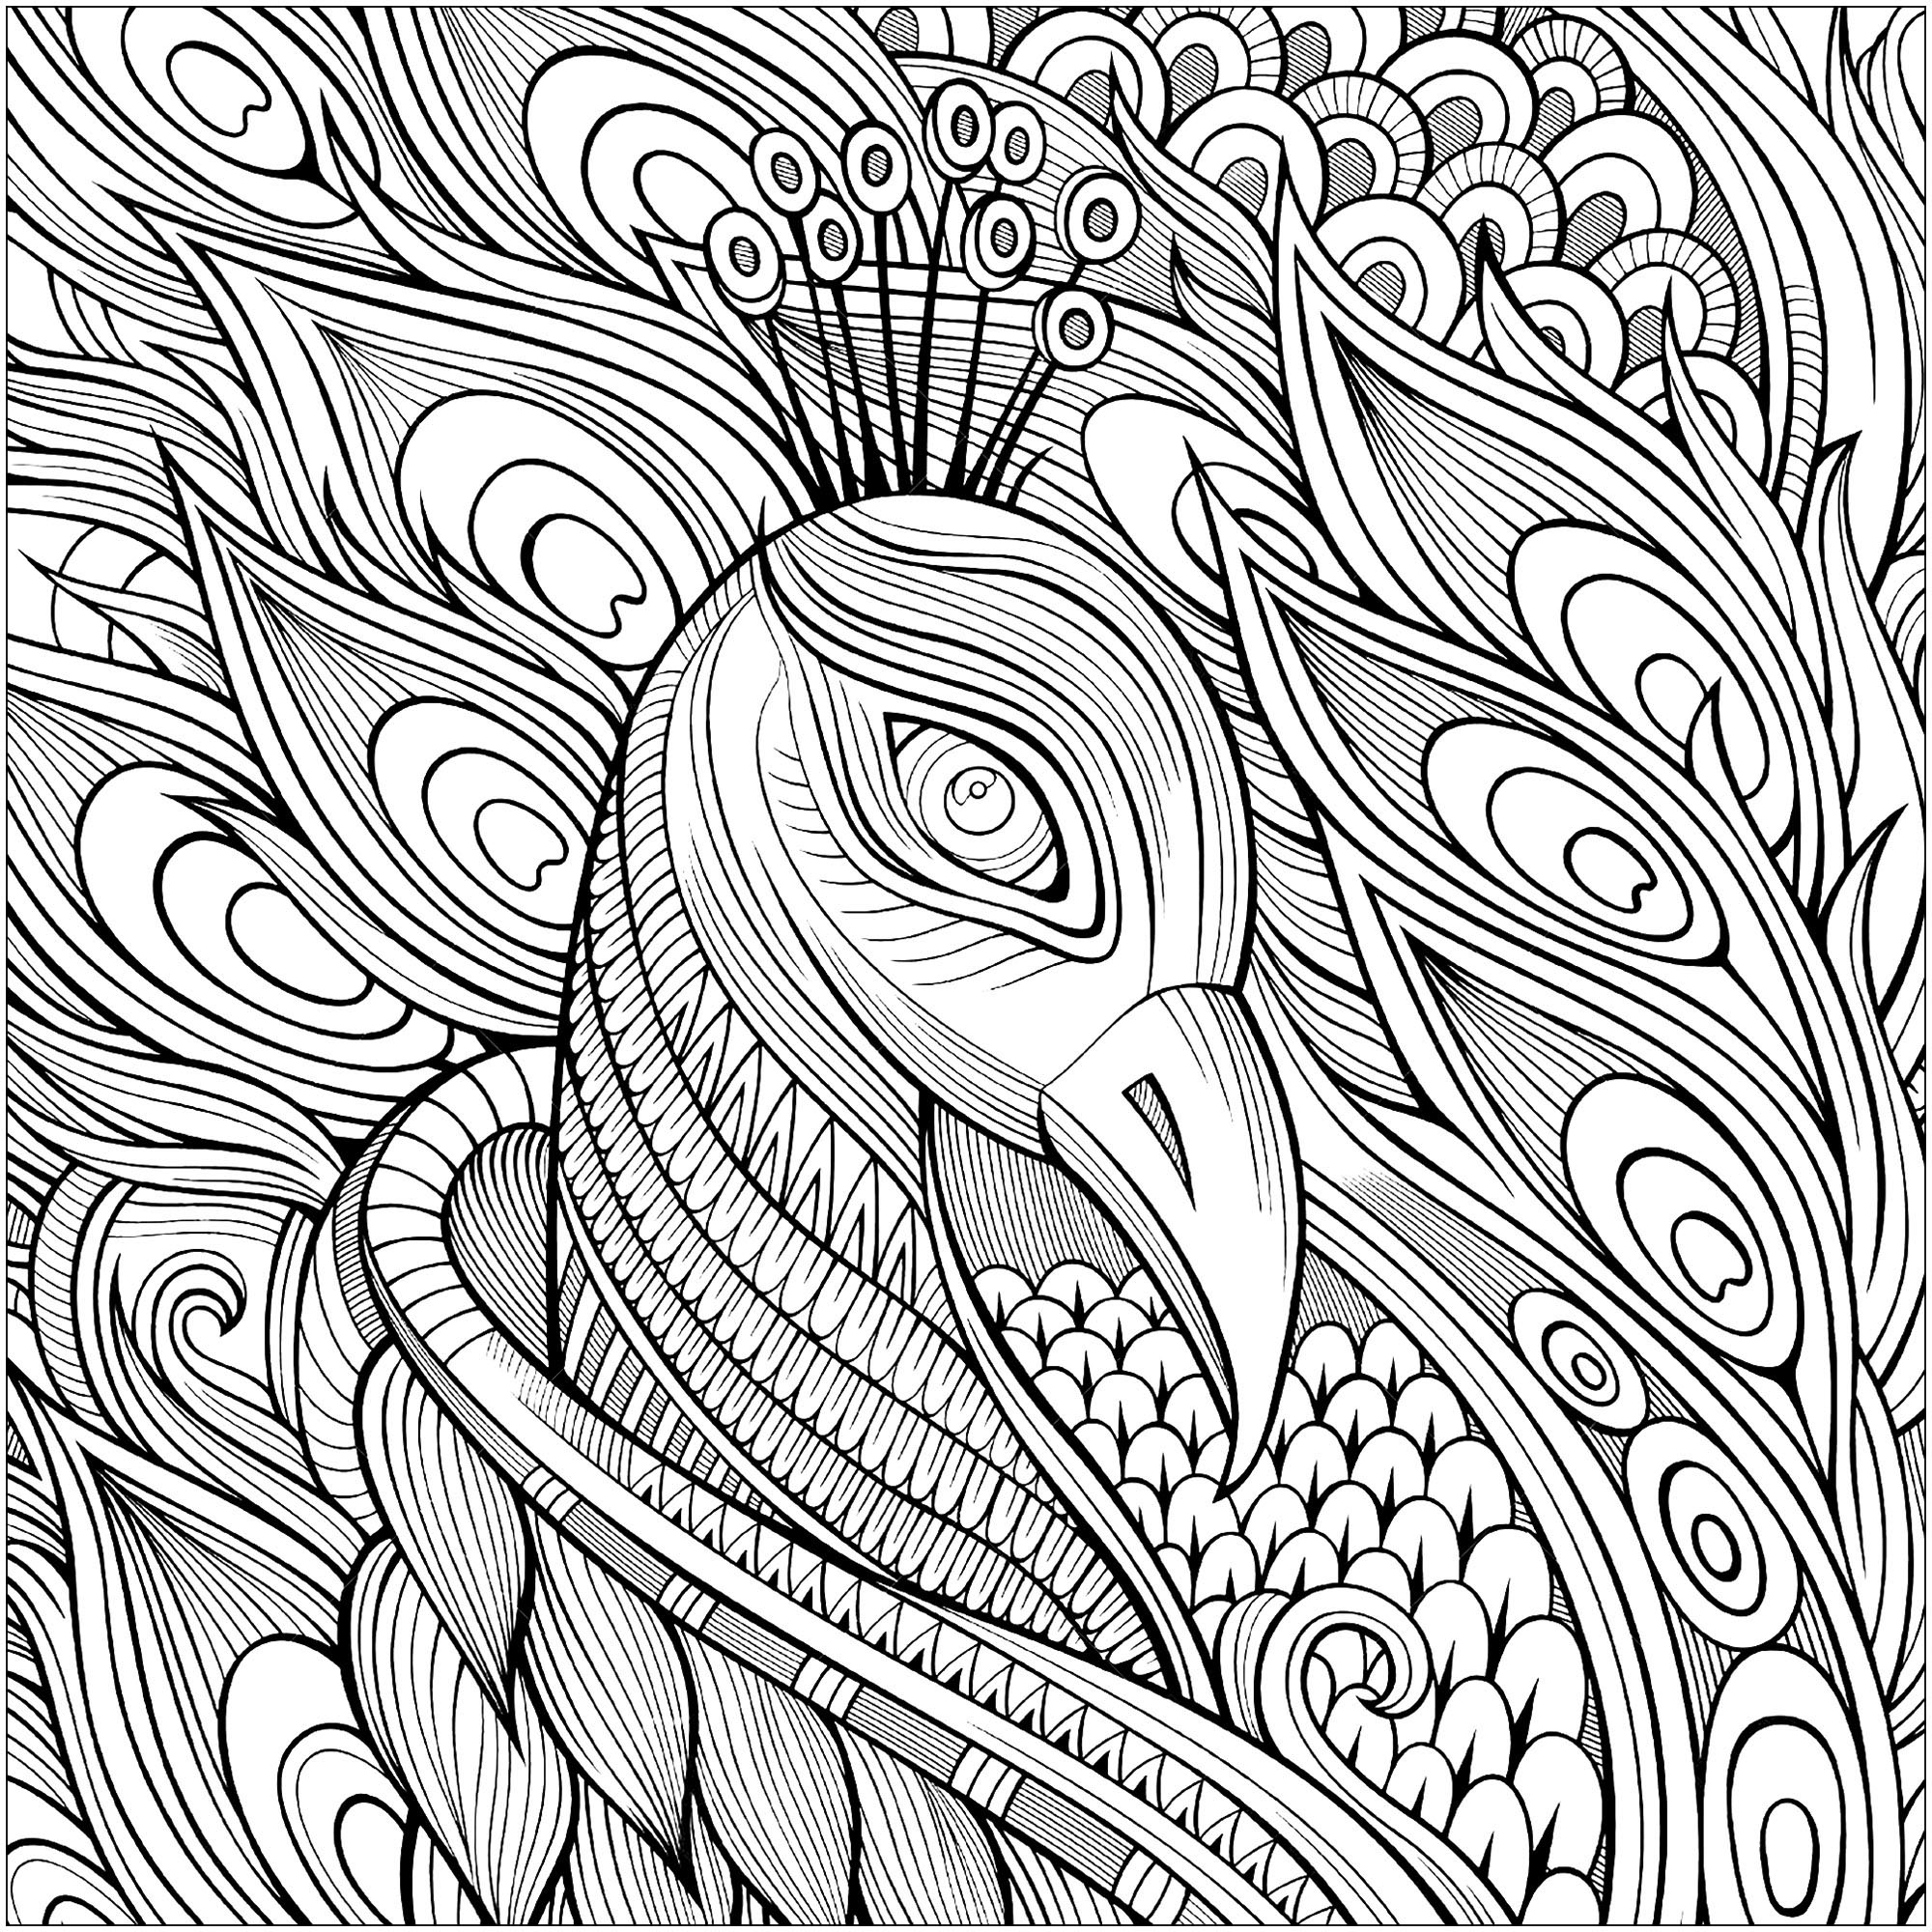 coloring picture color for kids color by letters coloring pages best coloring pages for kids color picture for kids coloring